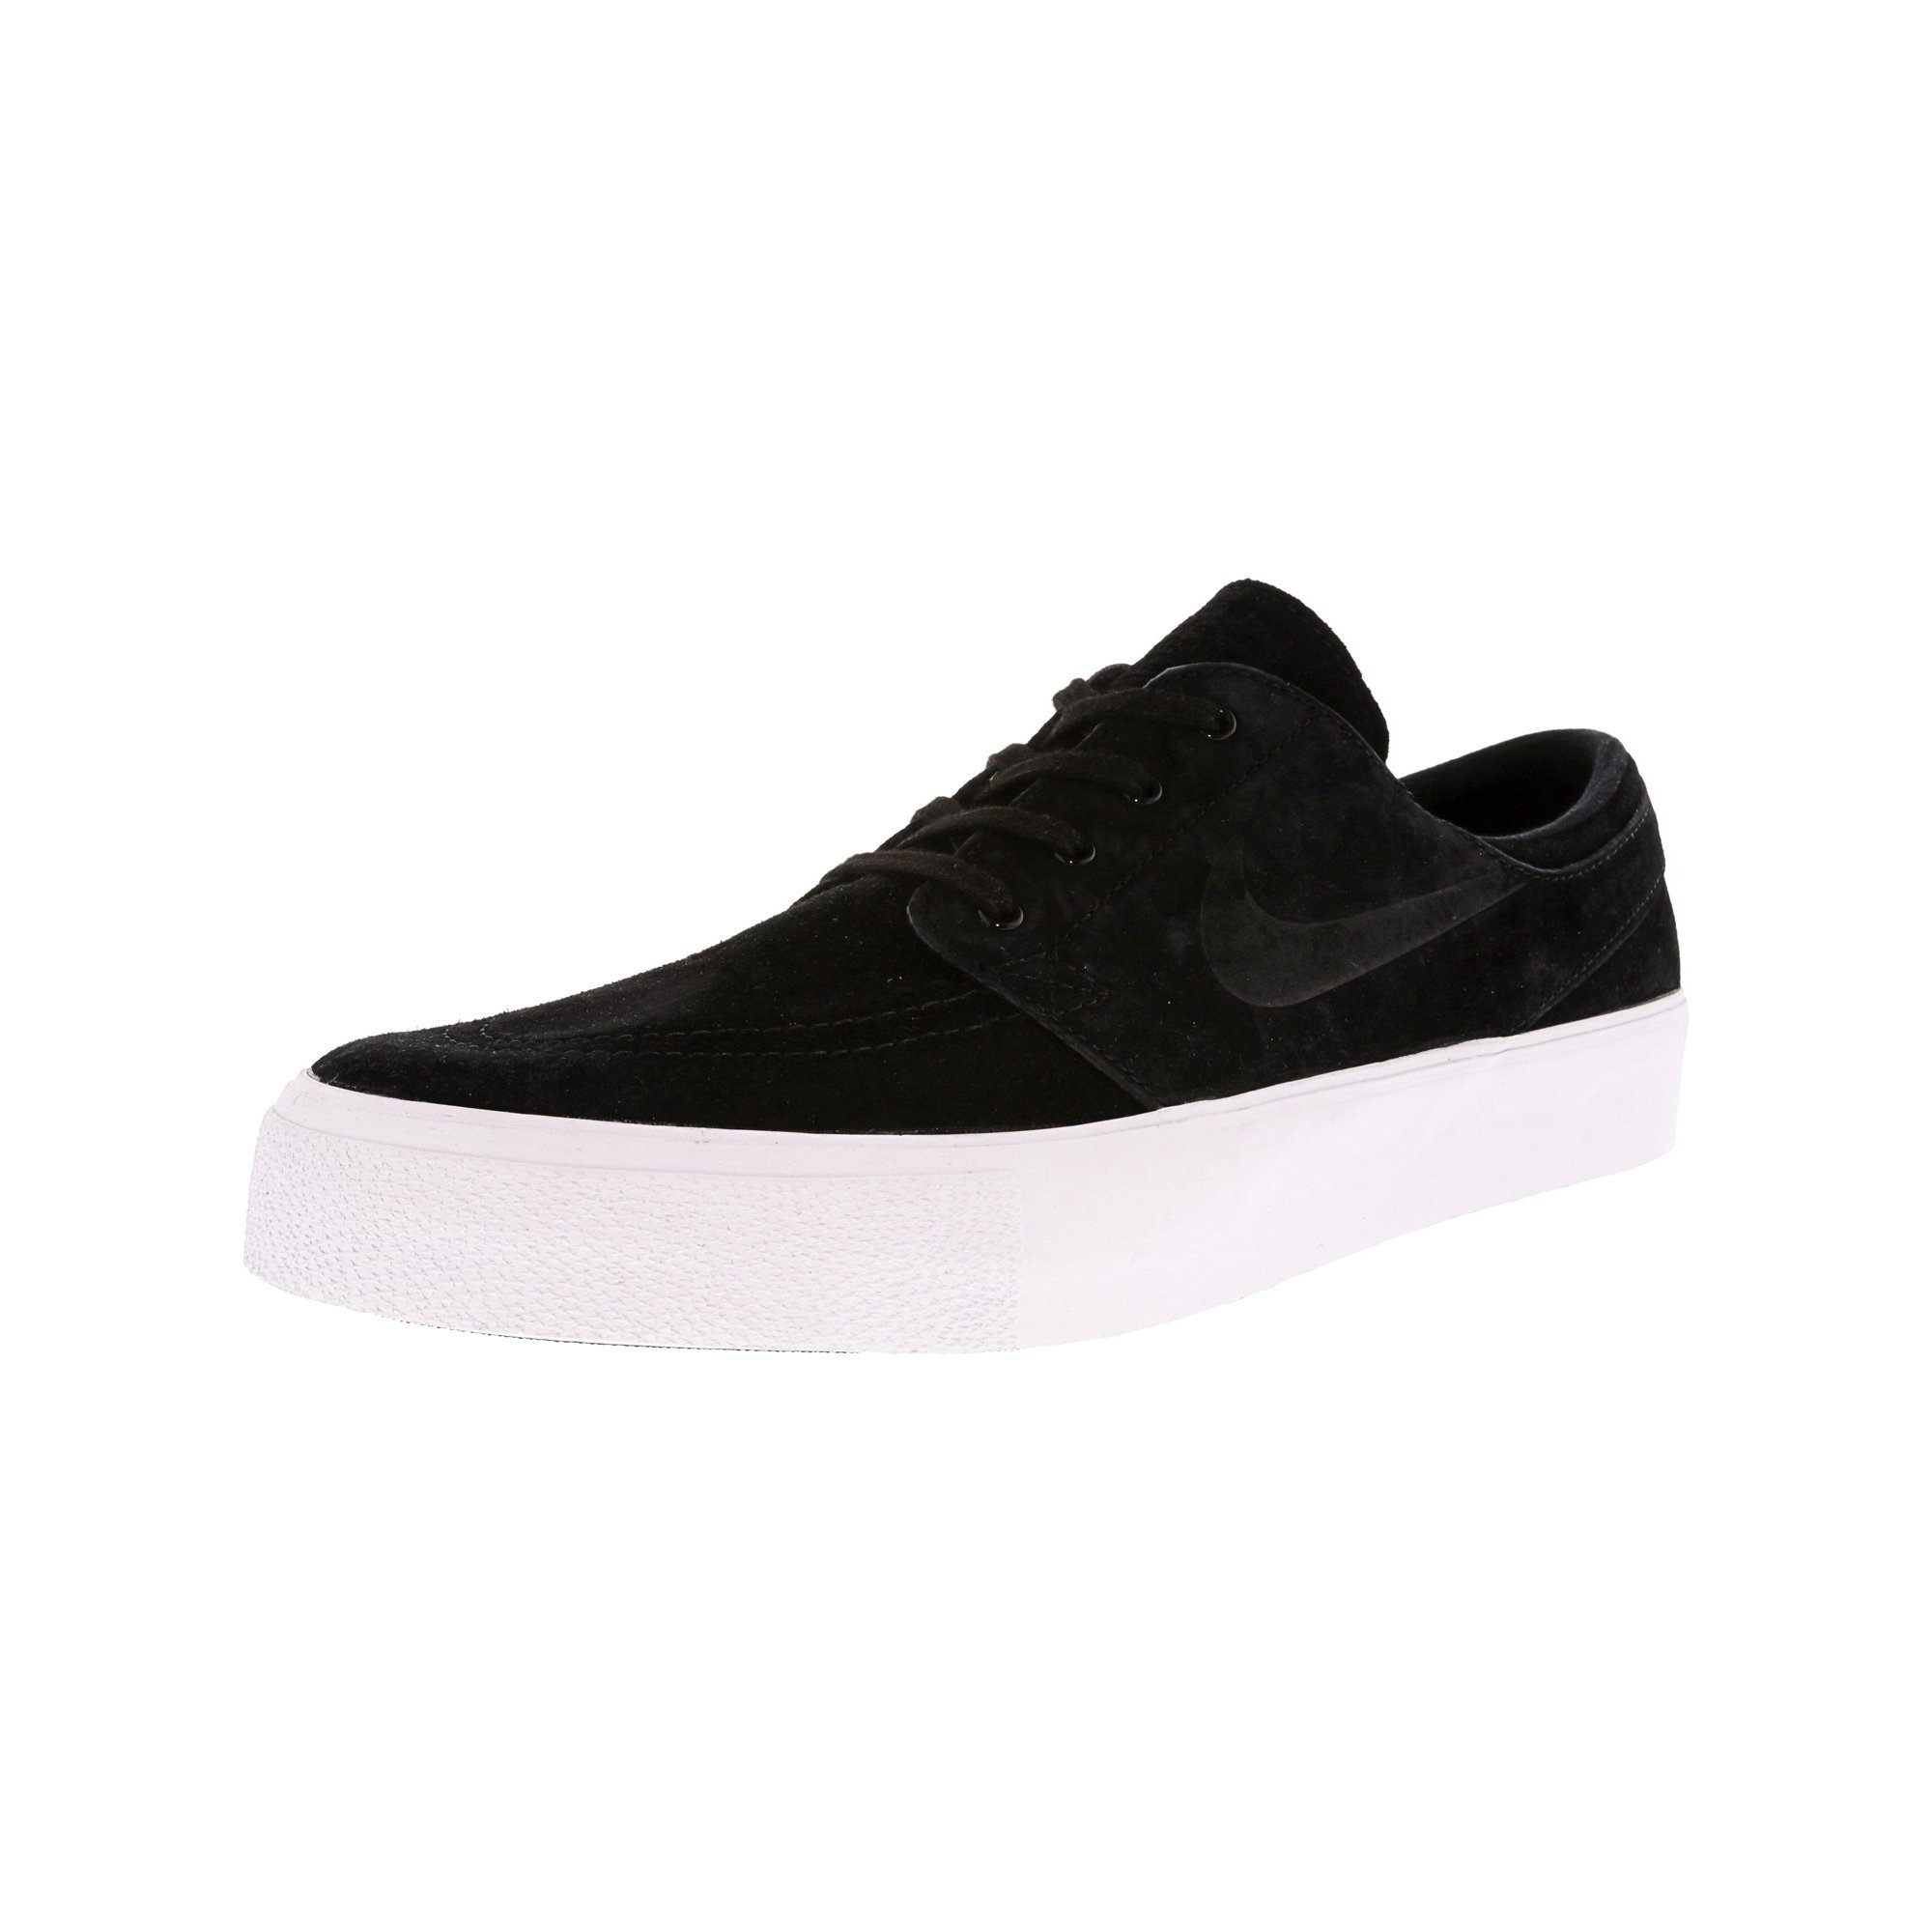 premium selection 45824 402b7 Nike Men s Zoom Stefan Janoski Prem Ht White   Black Multicolor Low Top  Suede Skateboarding Shoe - 8M   Walmart Canada